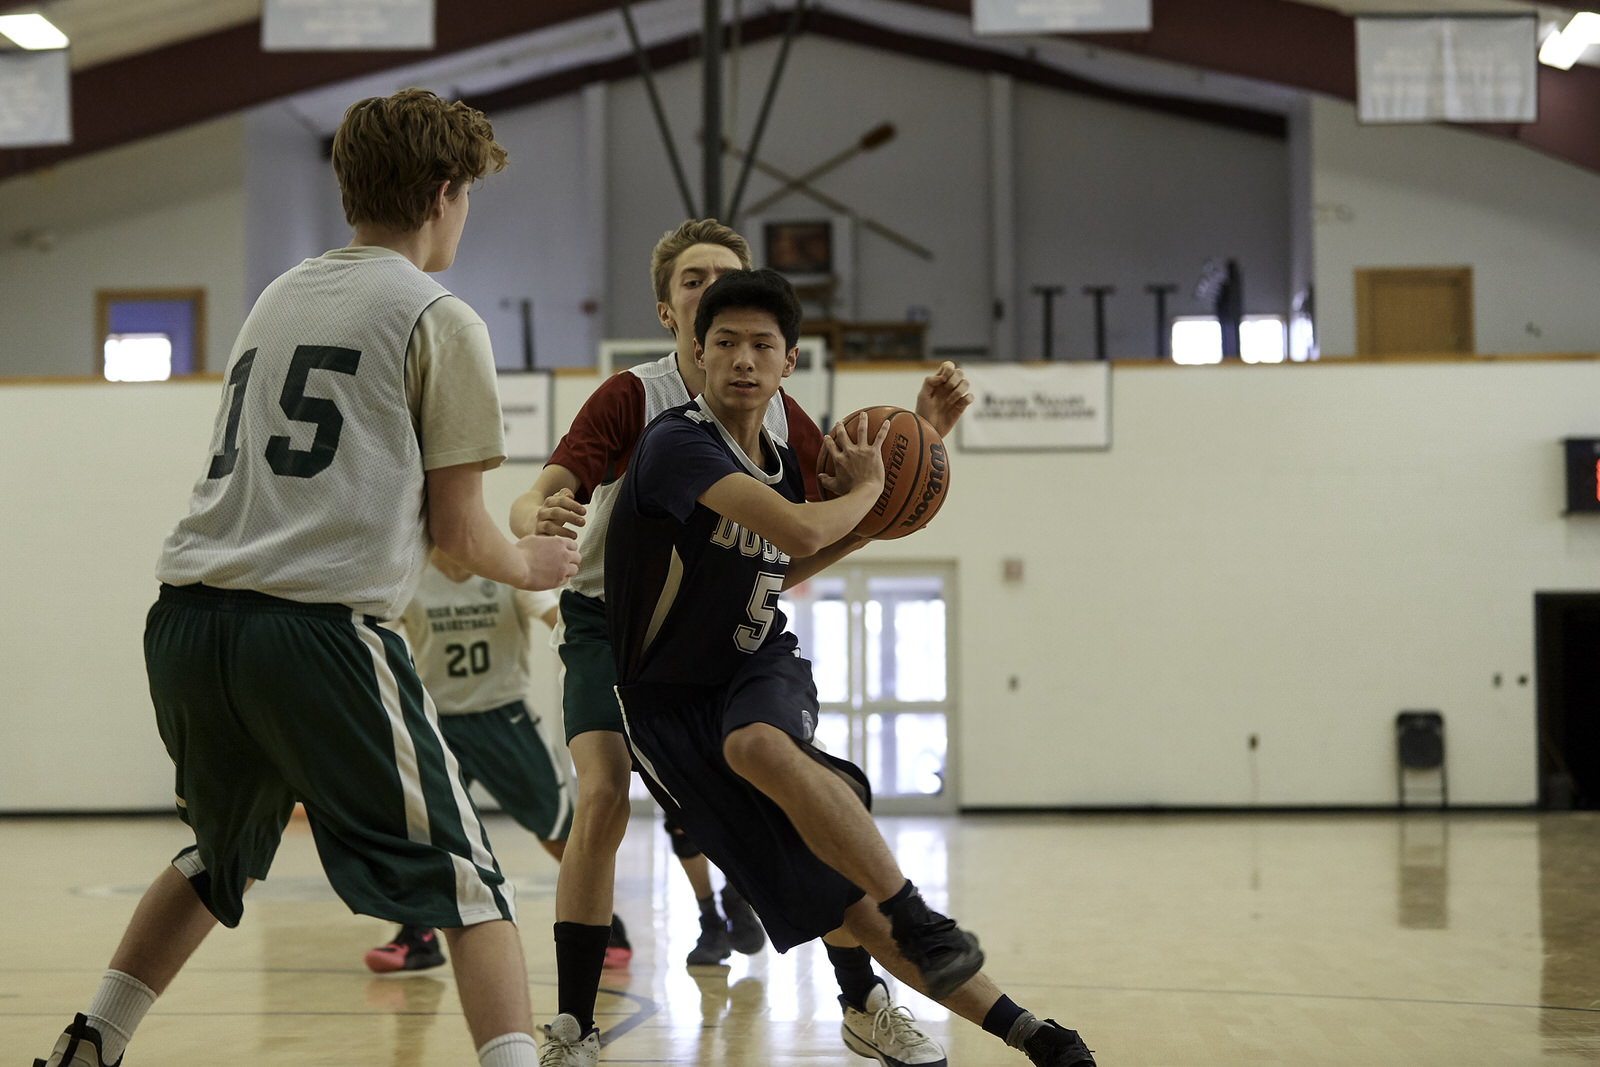 Dublin JV Boys Basketball vs High Mowing School - Jan 26 2019 - 0145.jpg